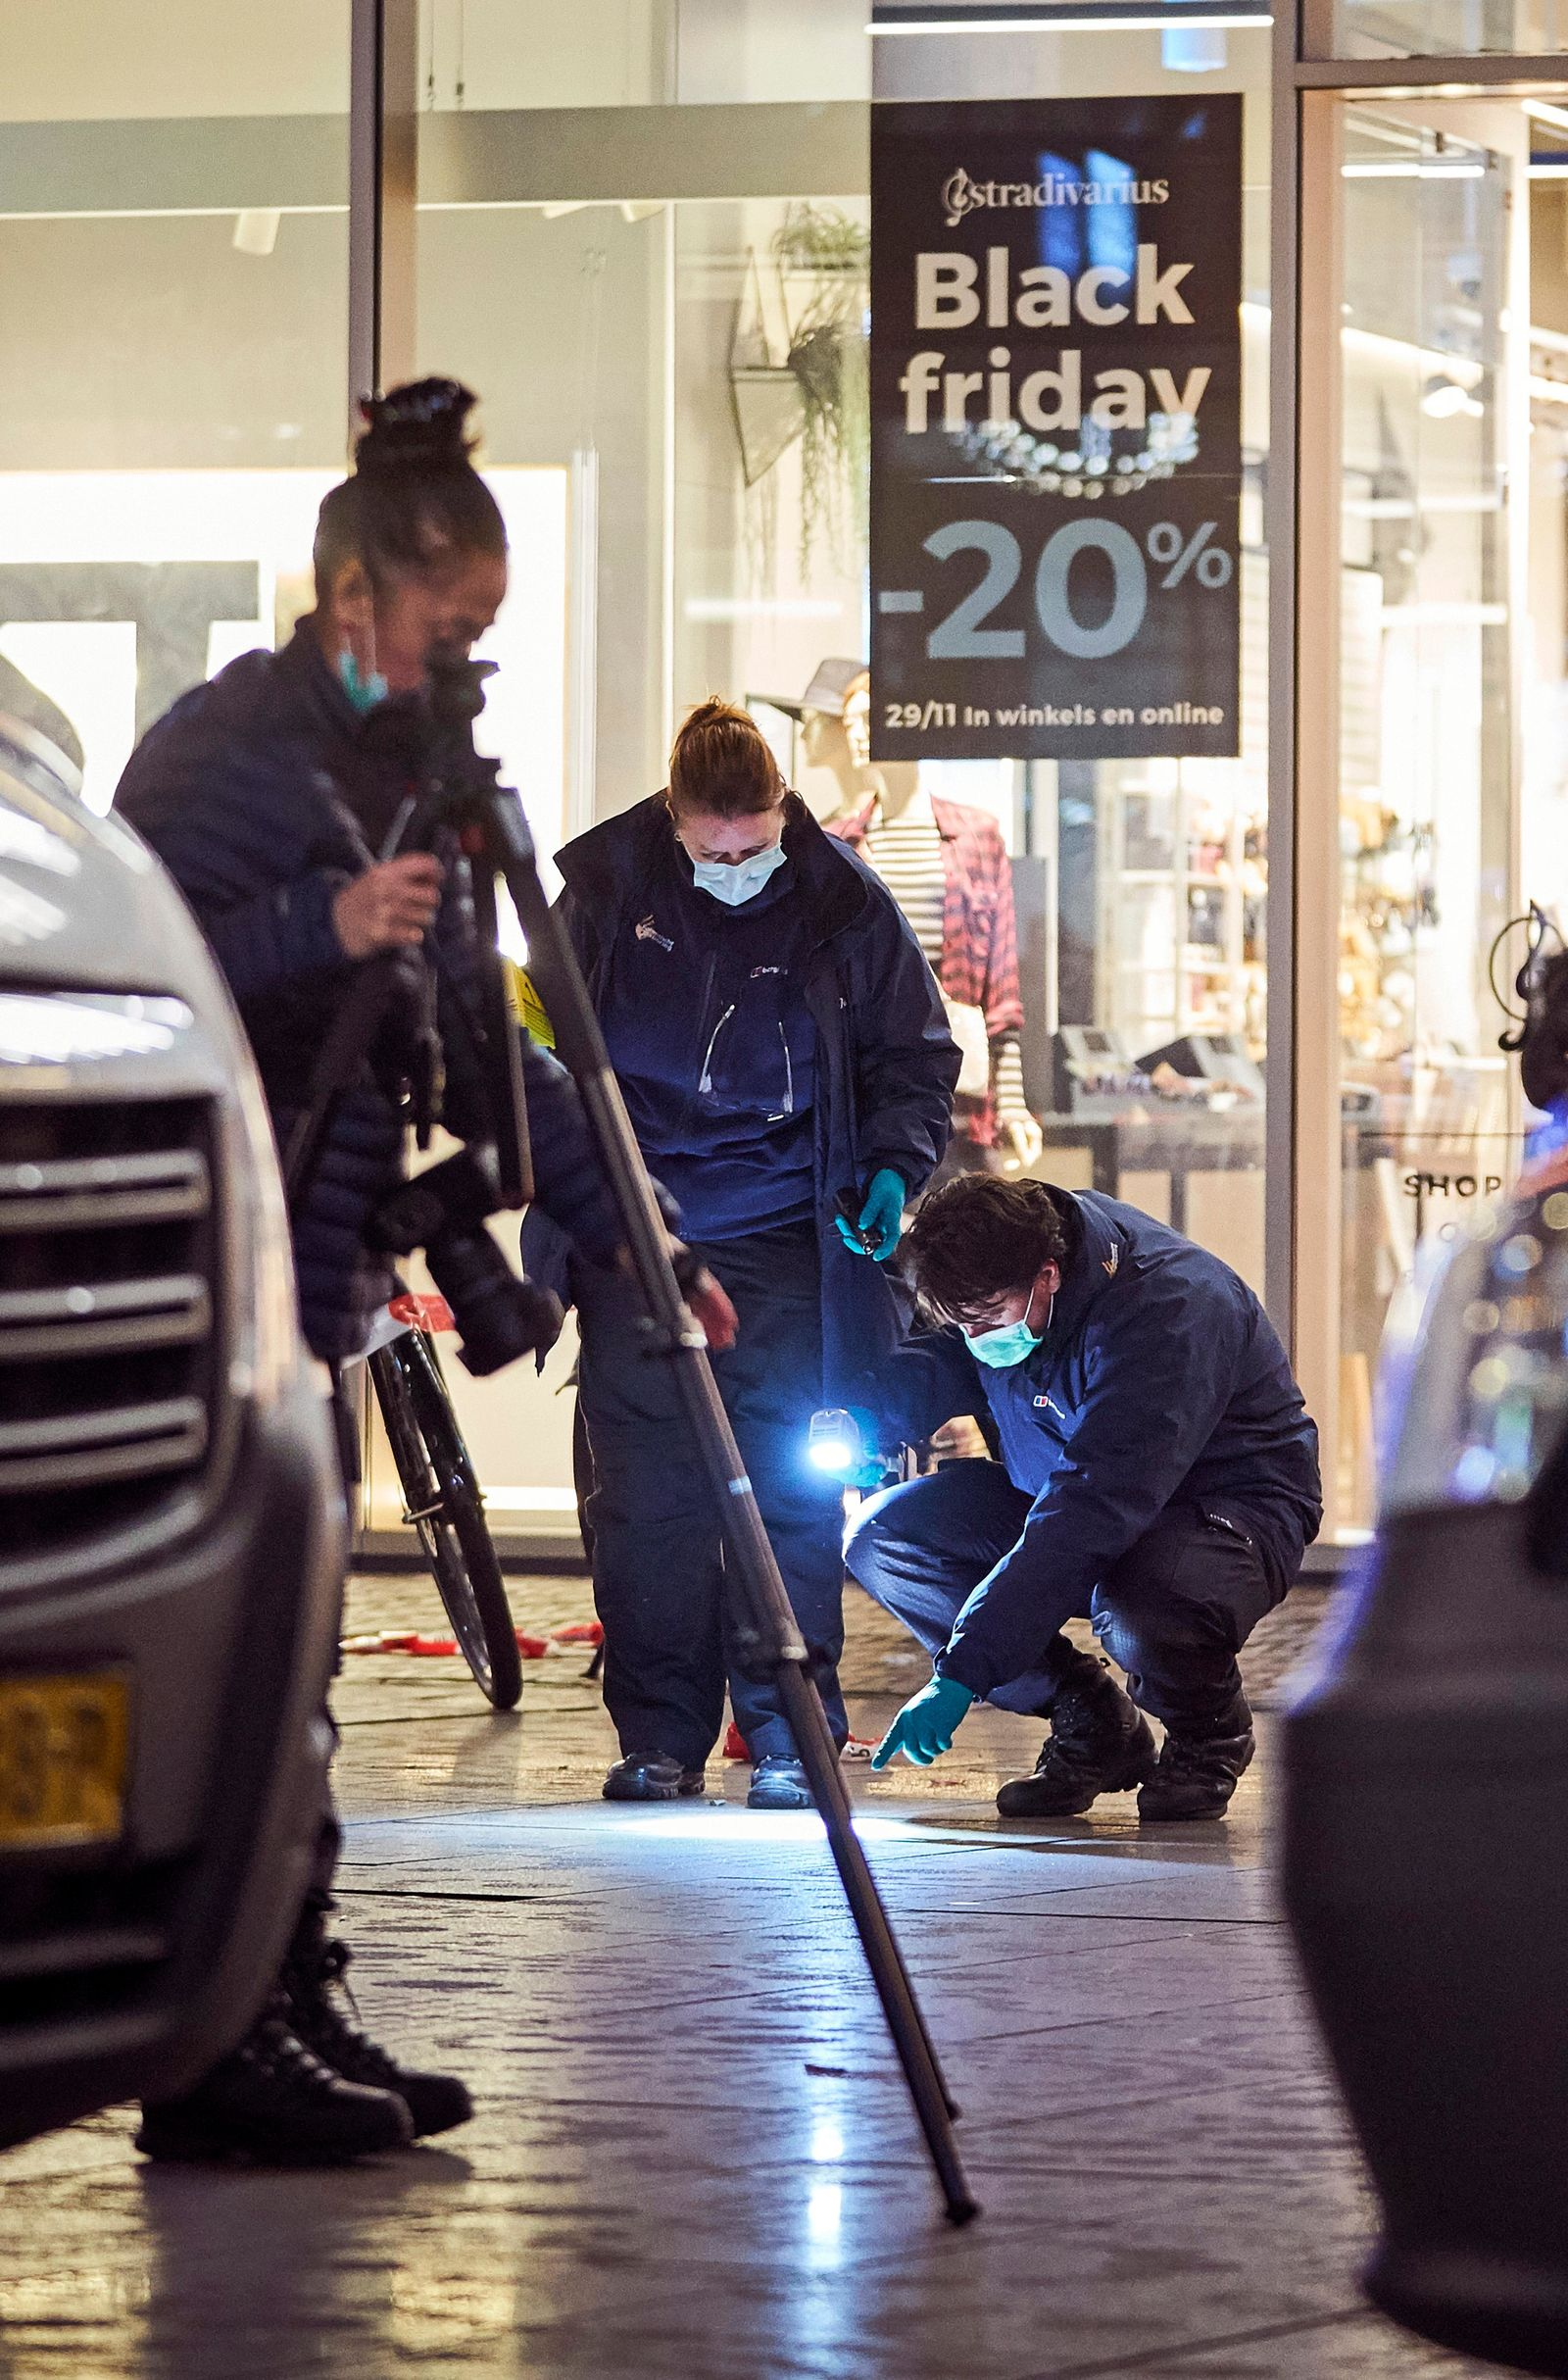 Forensic experts look for clues on the scene of a stabbing incident in the center of The Hague, Netherlands, Friday, Nov. 29, 2019. Dutch police say multiple people have been injured in a stabbing incident in The Hague's main shopping street. (AP Photo/Phil Nijhuis)